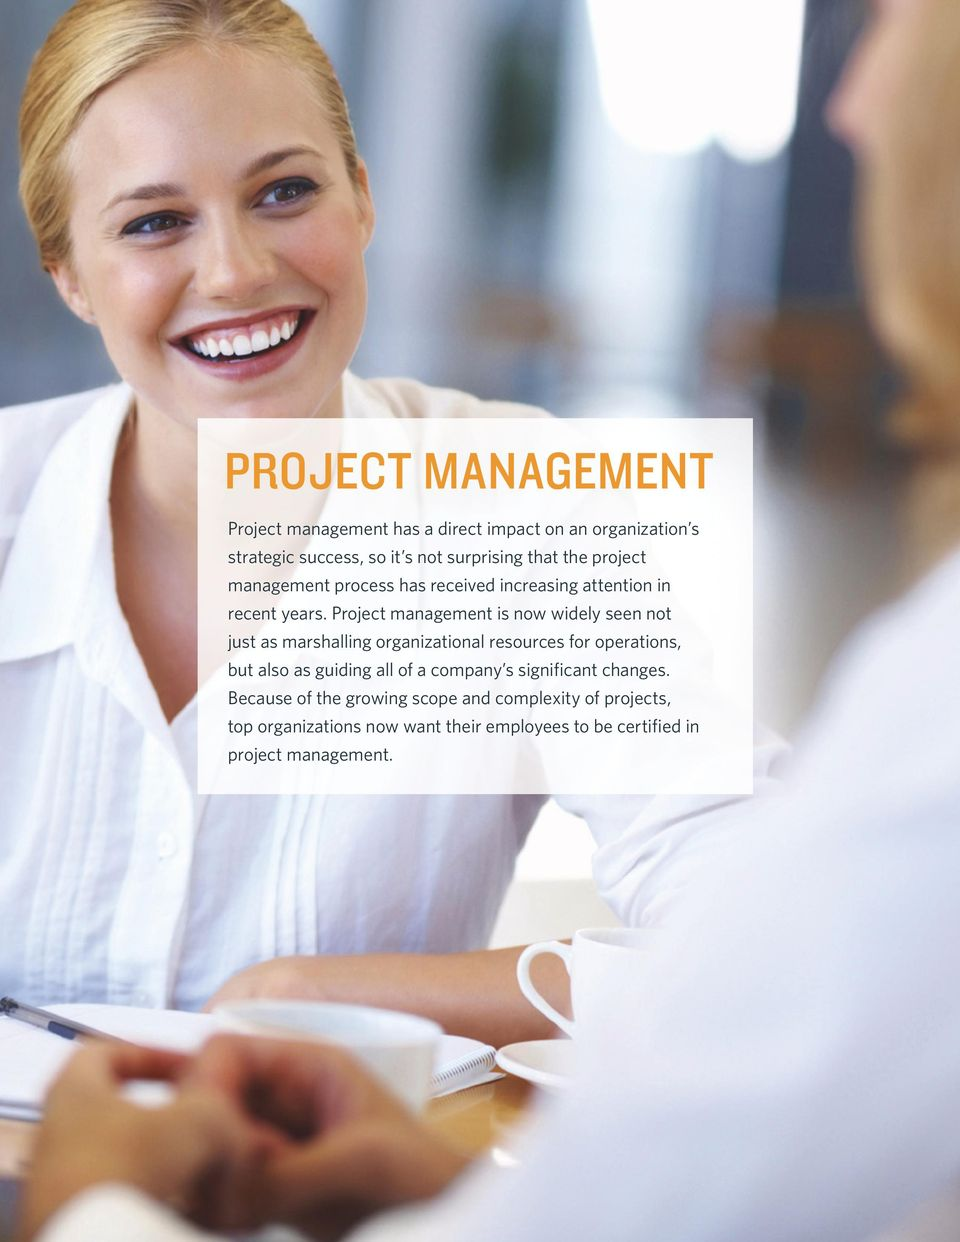 Project management is now widely seen not just as marshalling organizational resources for operations, but also as guiding all